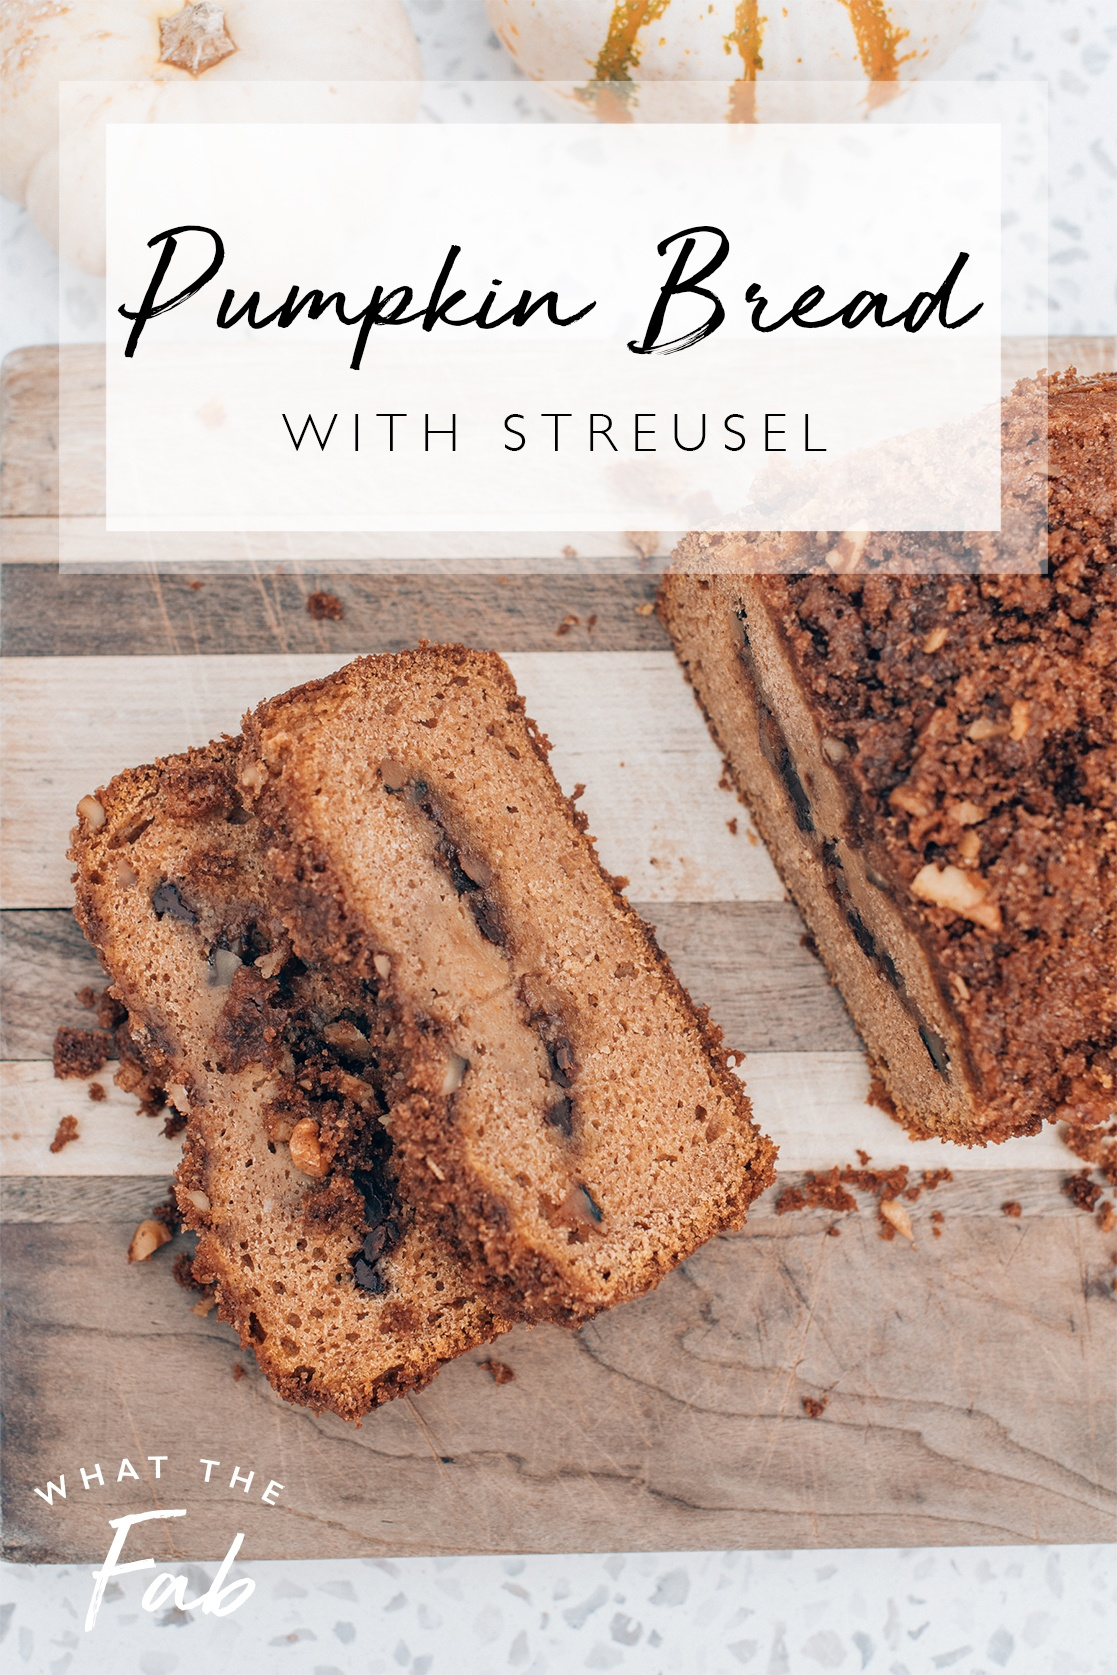 Pumpkin bread with streusel recipe, by lifestyle blogger What The Fab